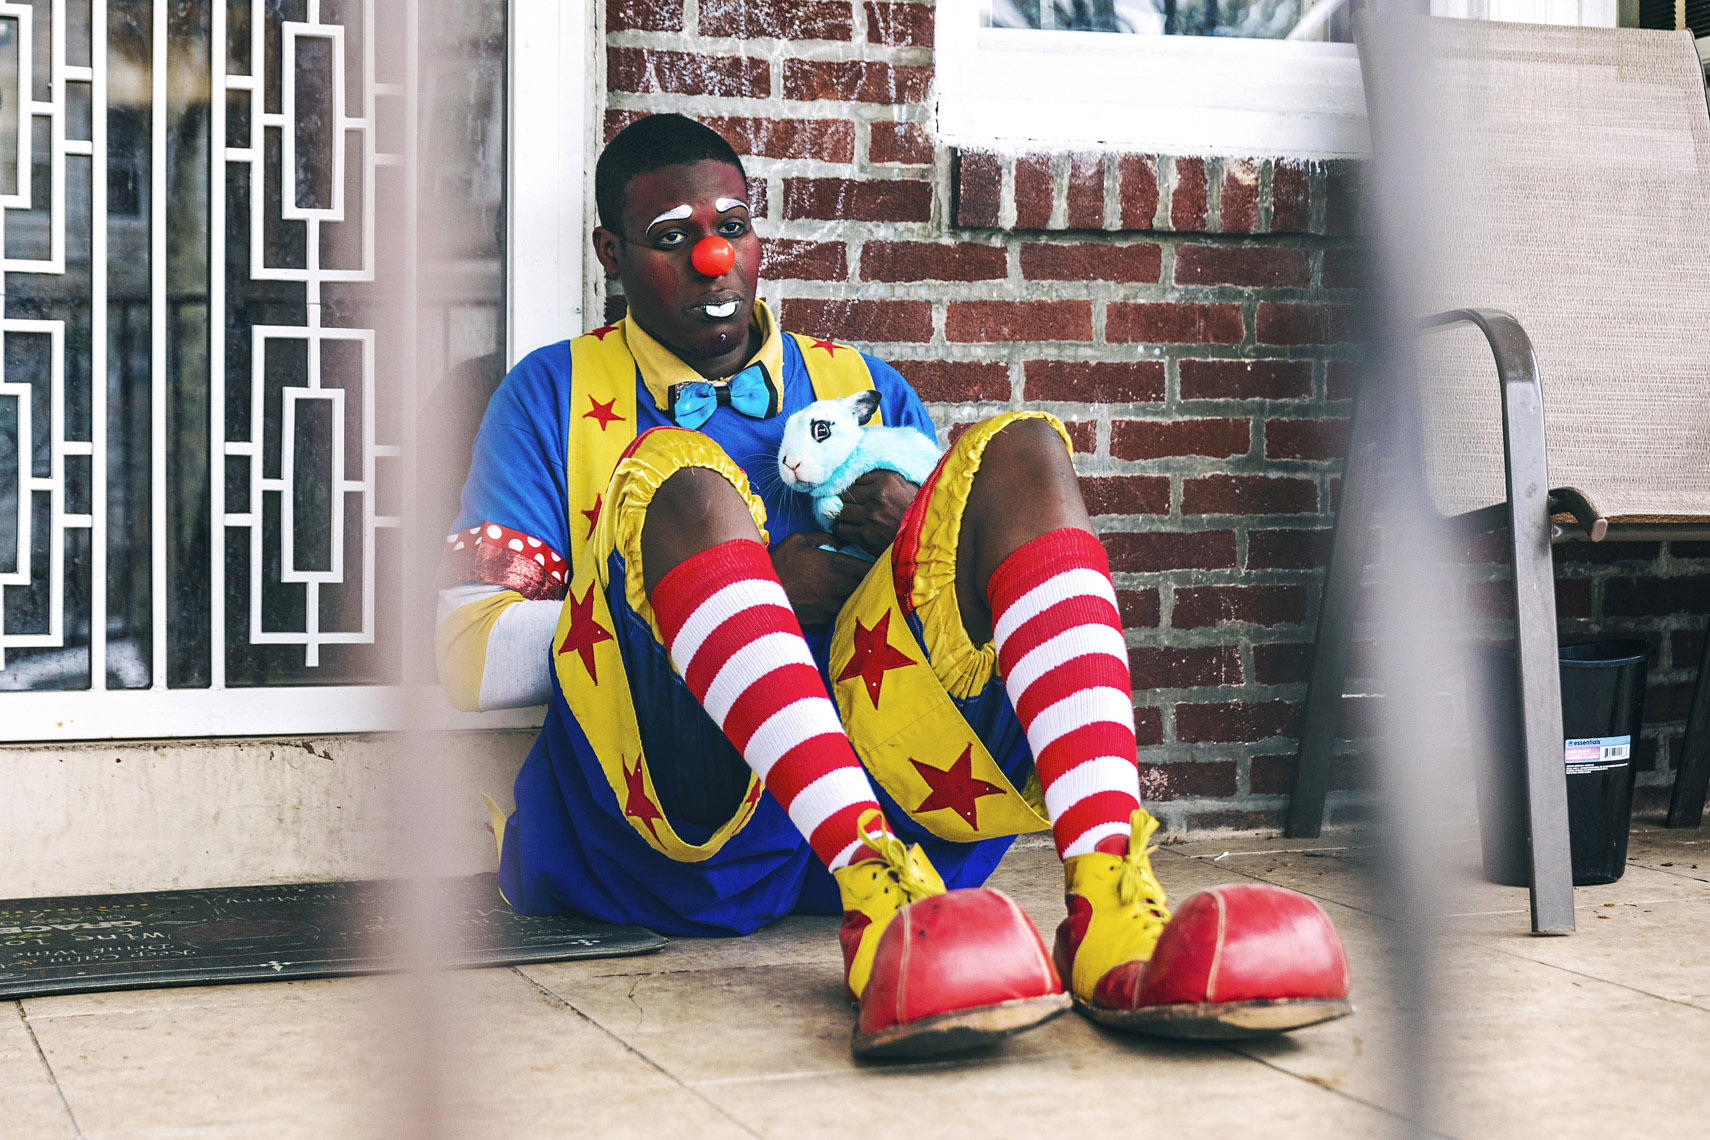 Quany The Clown quarantined